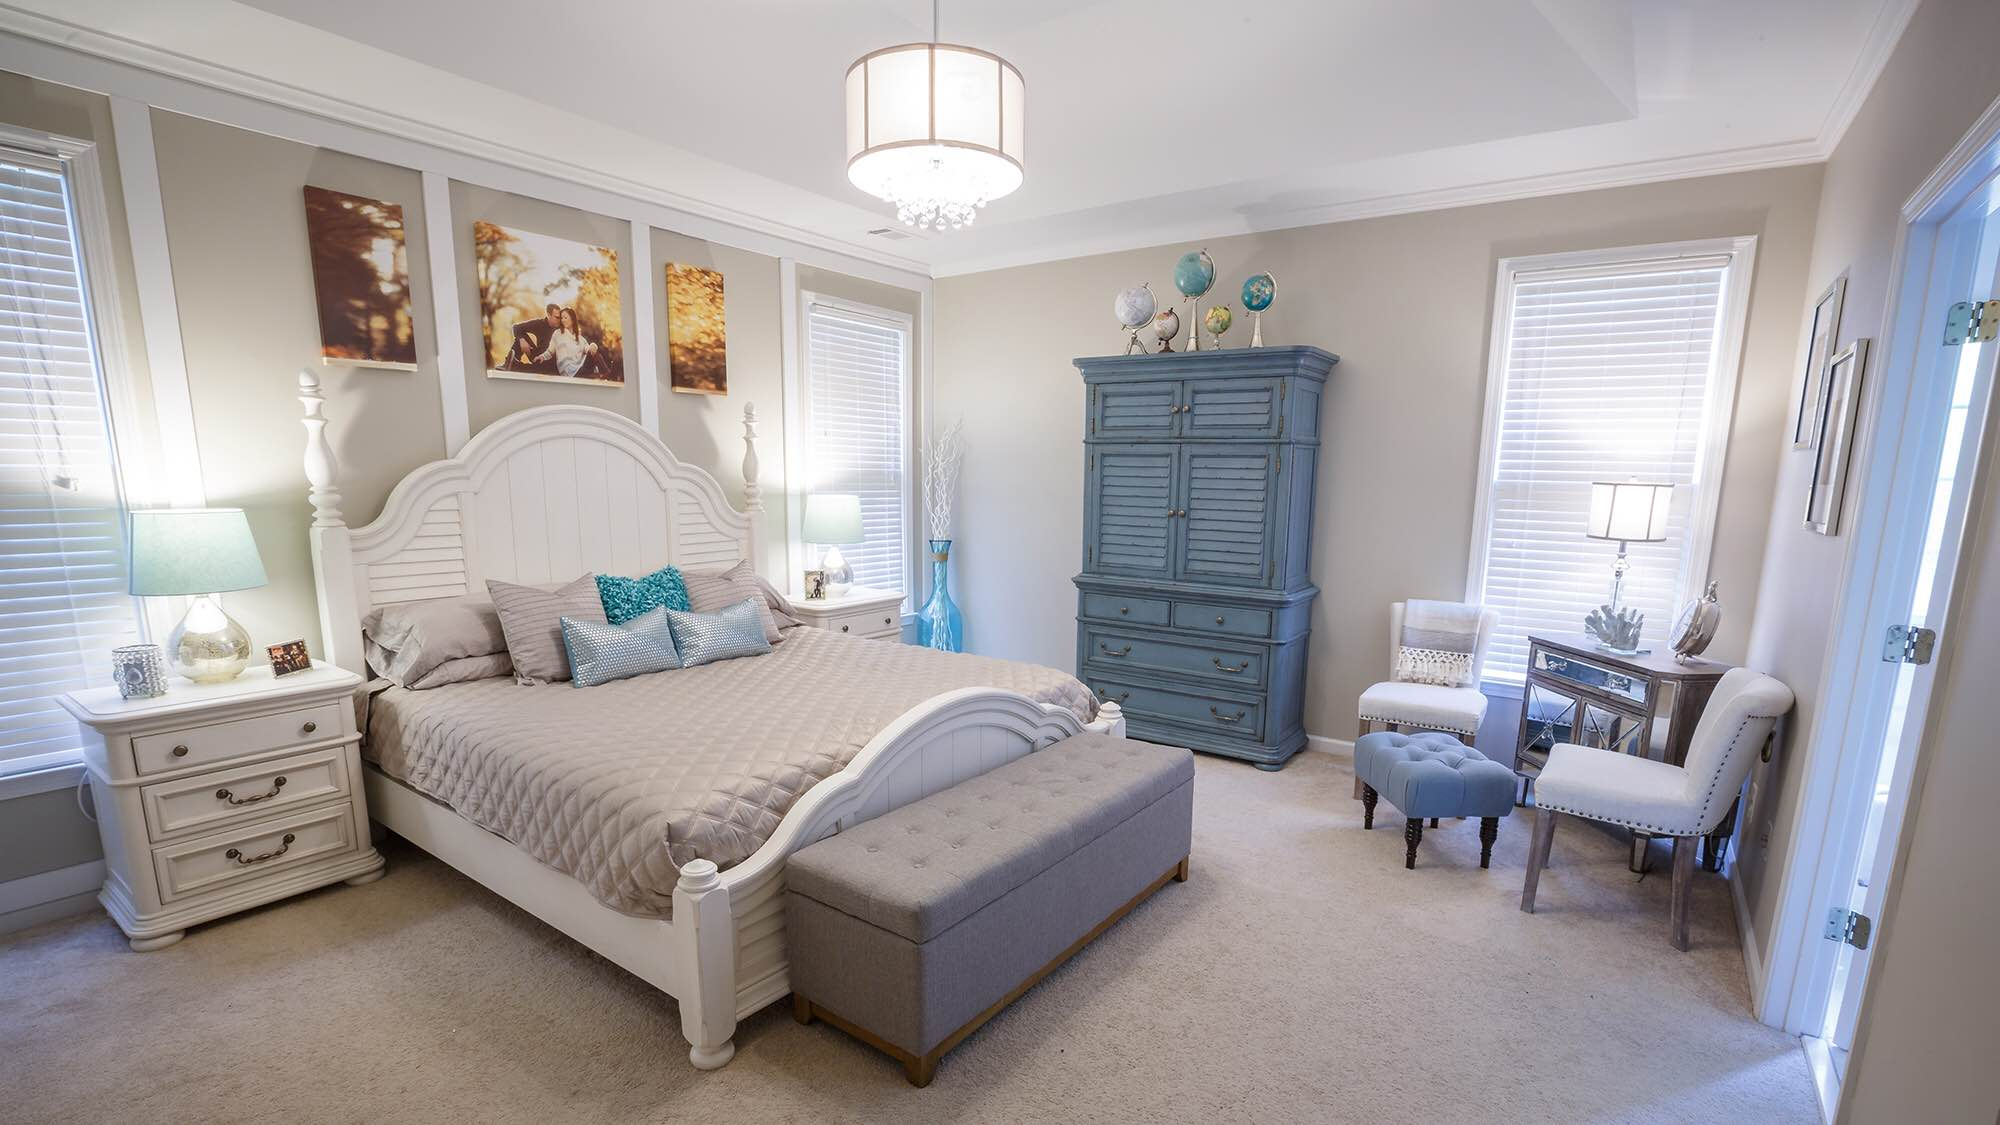 Their Master Bedroom Is A Beautiful Mix Of Beachy Farmhouse And Modern Glam.  The Chandelier Was From Pier 1 Imports And The Tufted Bench Was From  Homegoods.